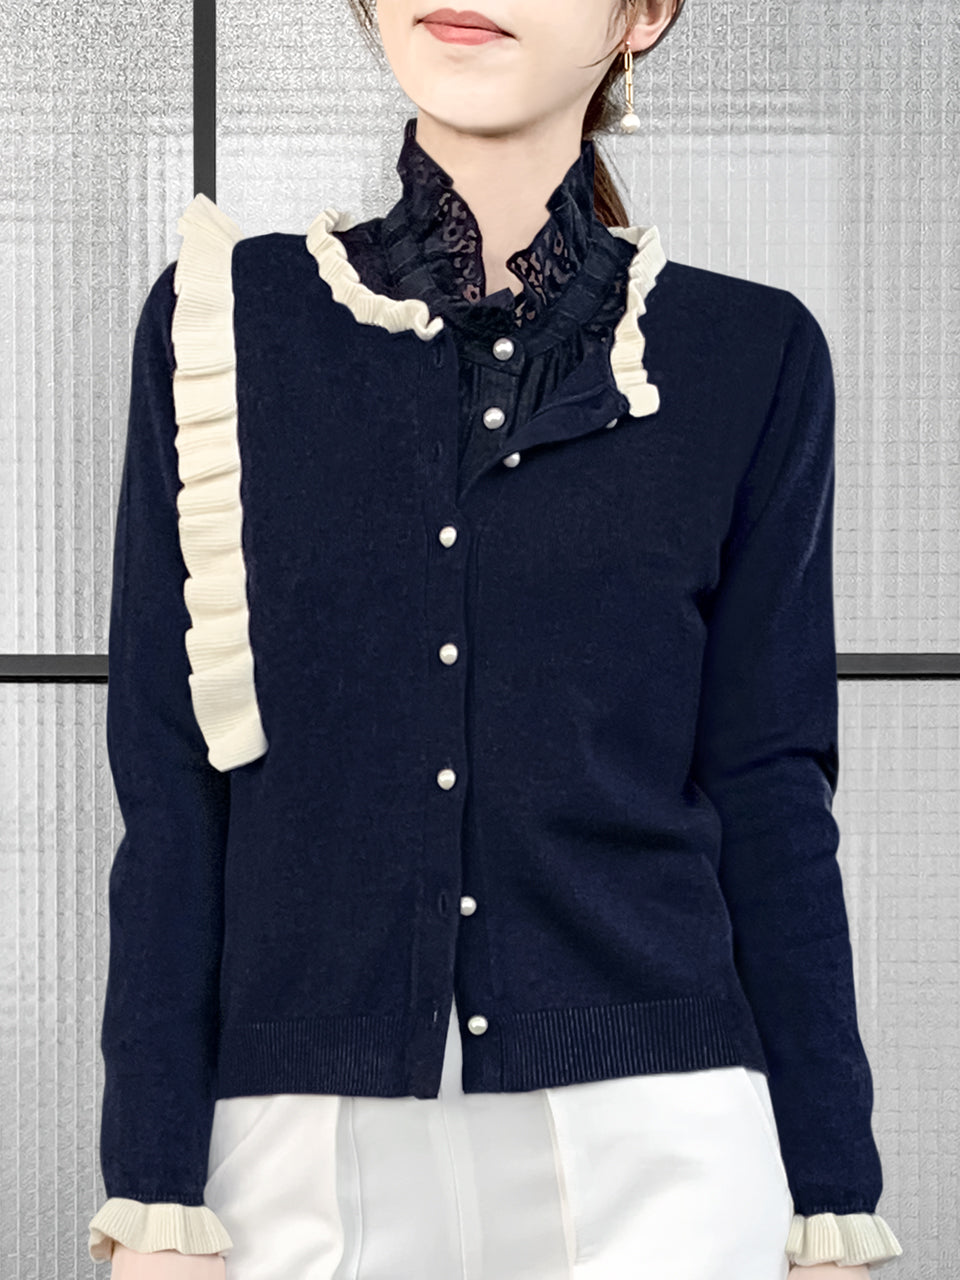 Navy/ Ivory Contrast Ruffle Cashmere & Wool Cardigan